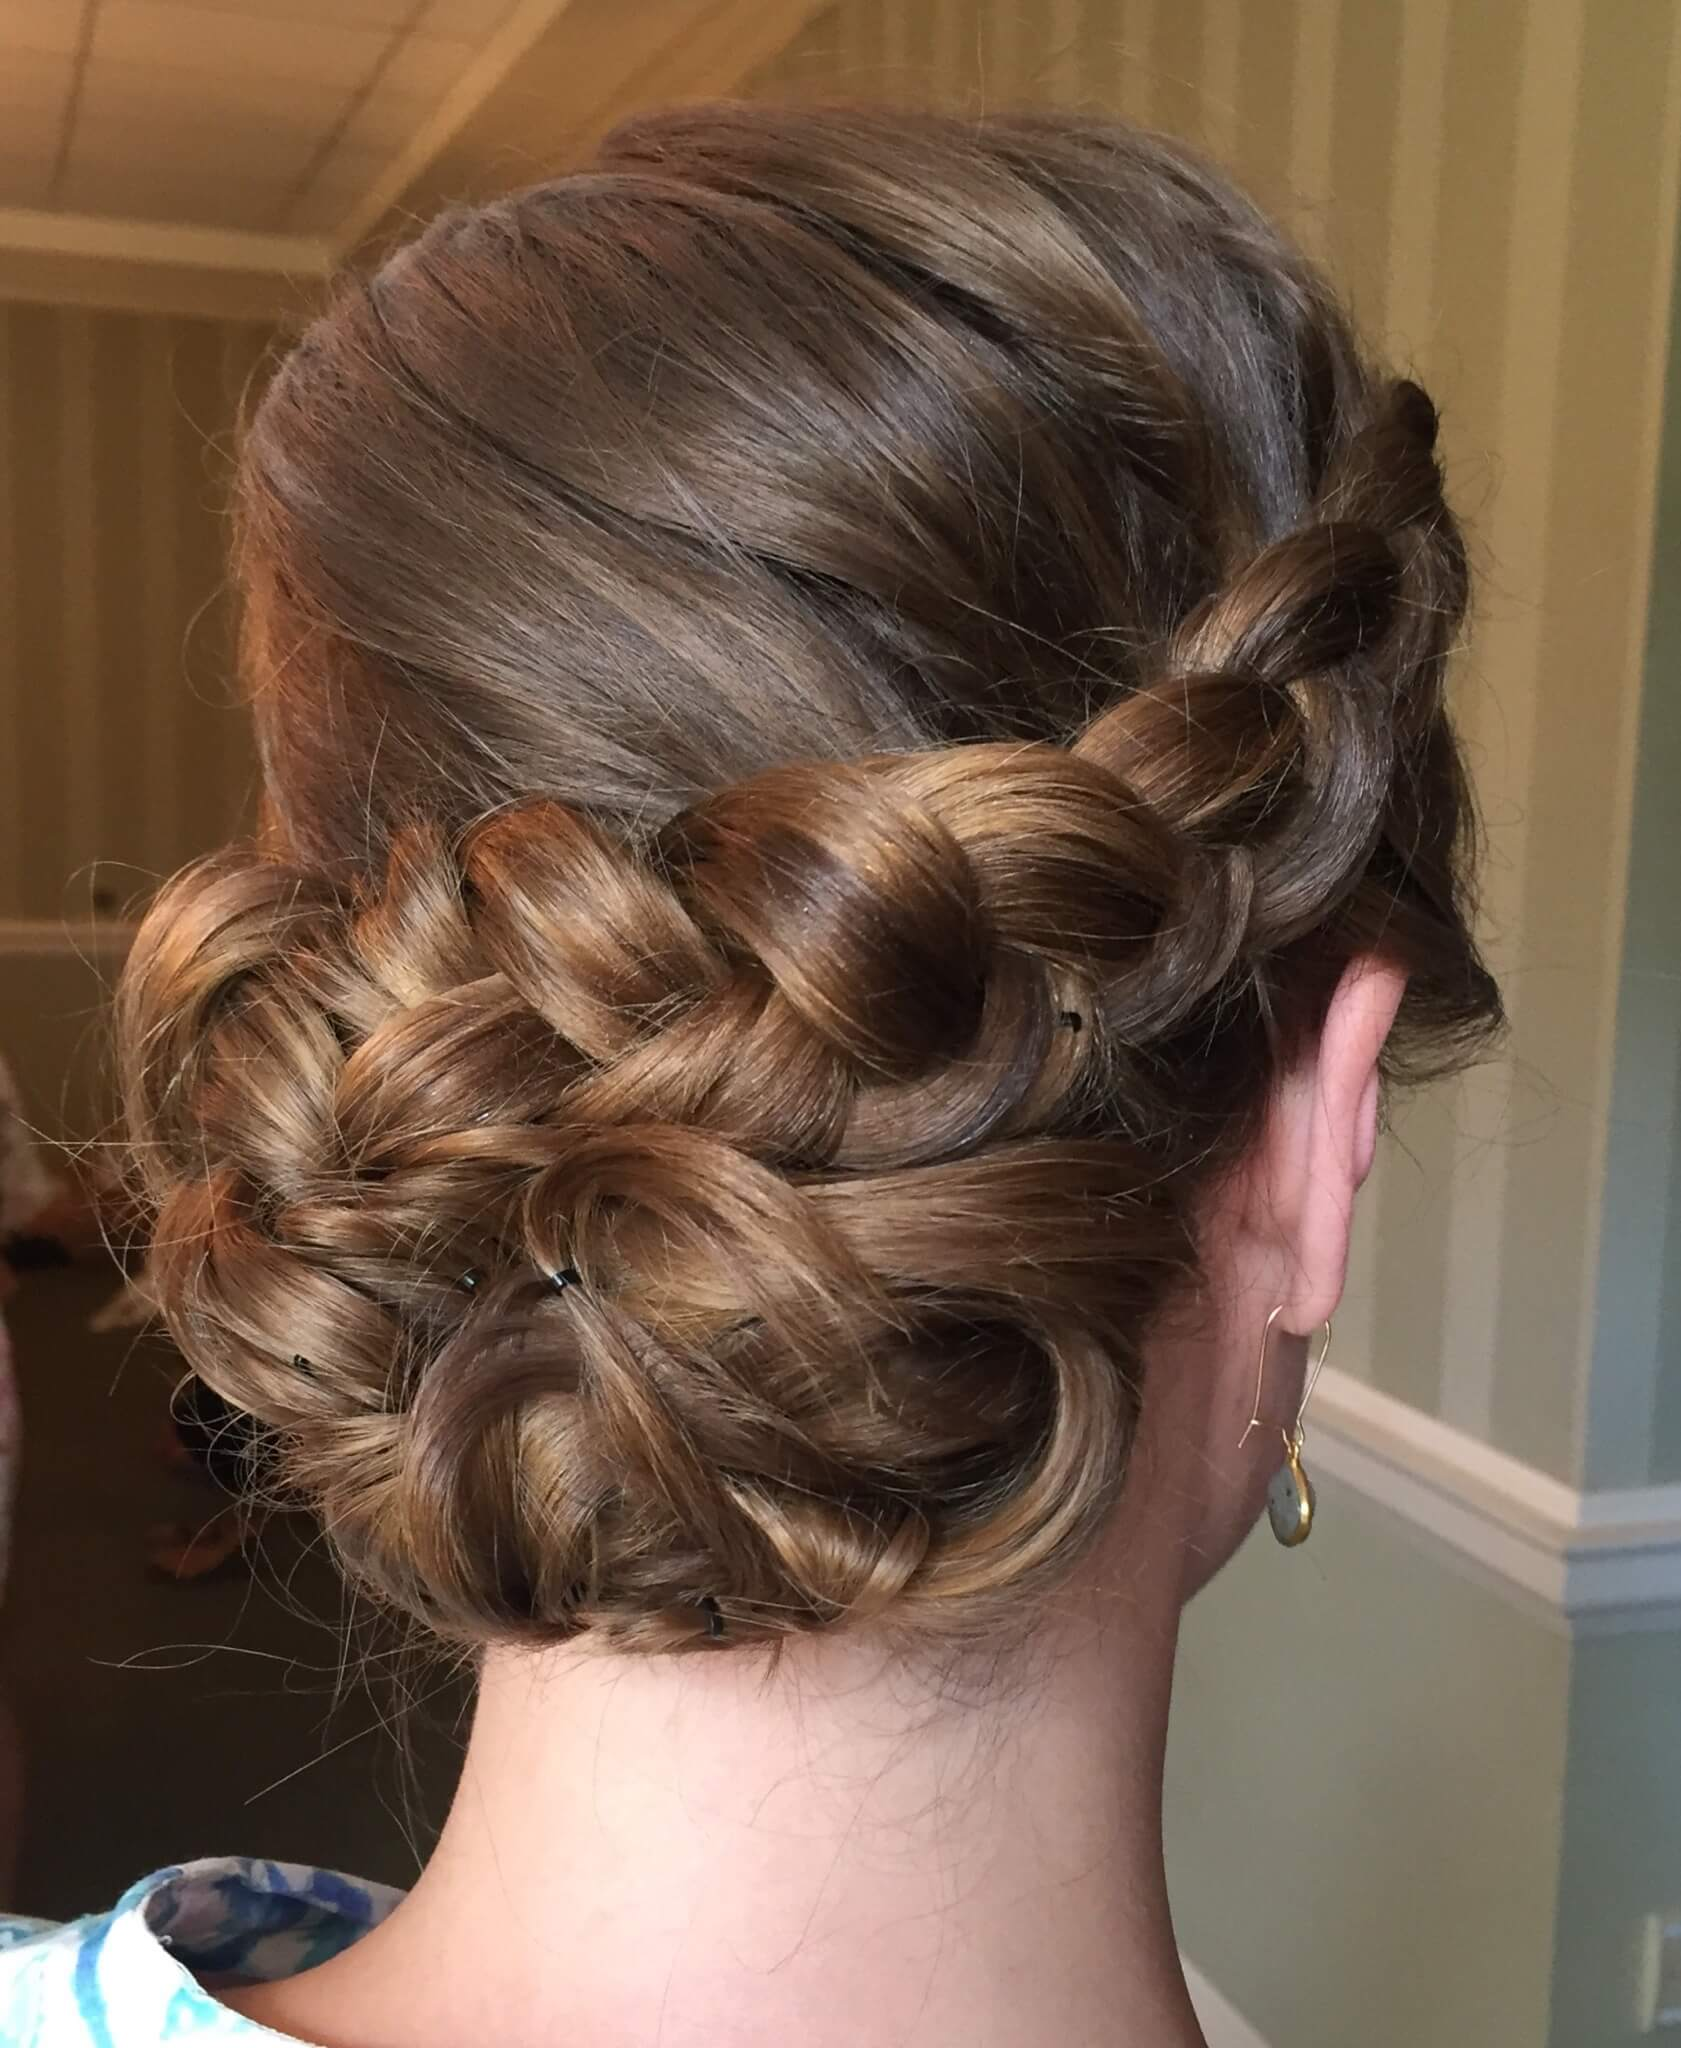 hair-salon-jacksonville-wedding-hairstyles-99-05